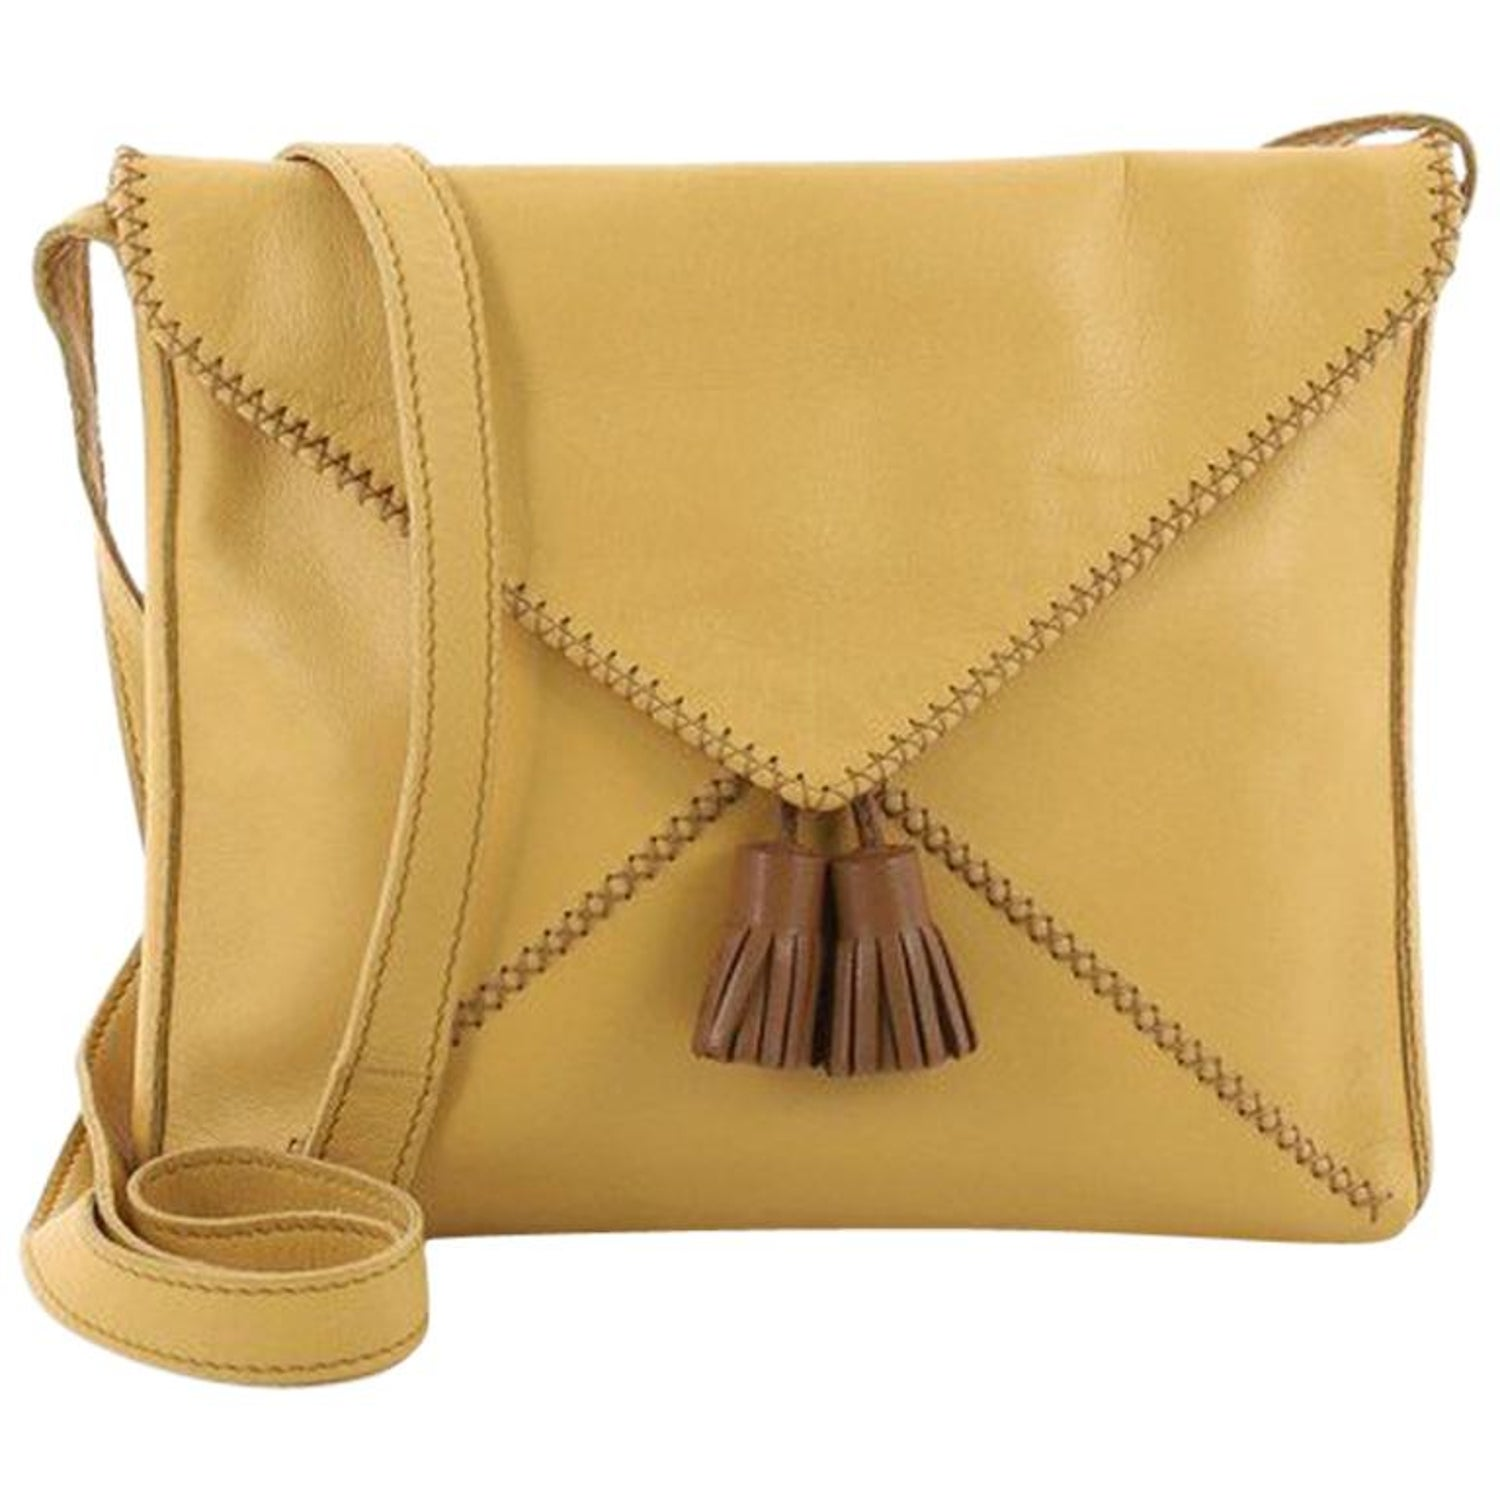 29bf9138d992 Hermes Tassel Envelope Crossbody Bag Leather Small at 1stdibs